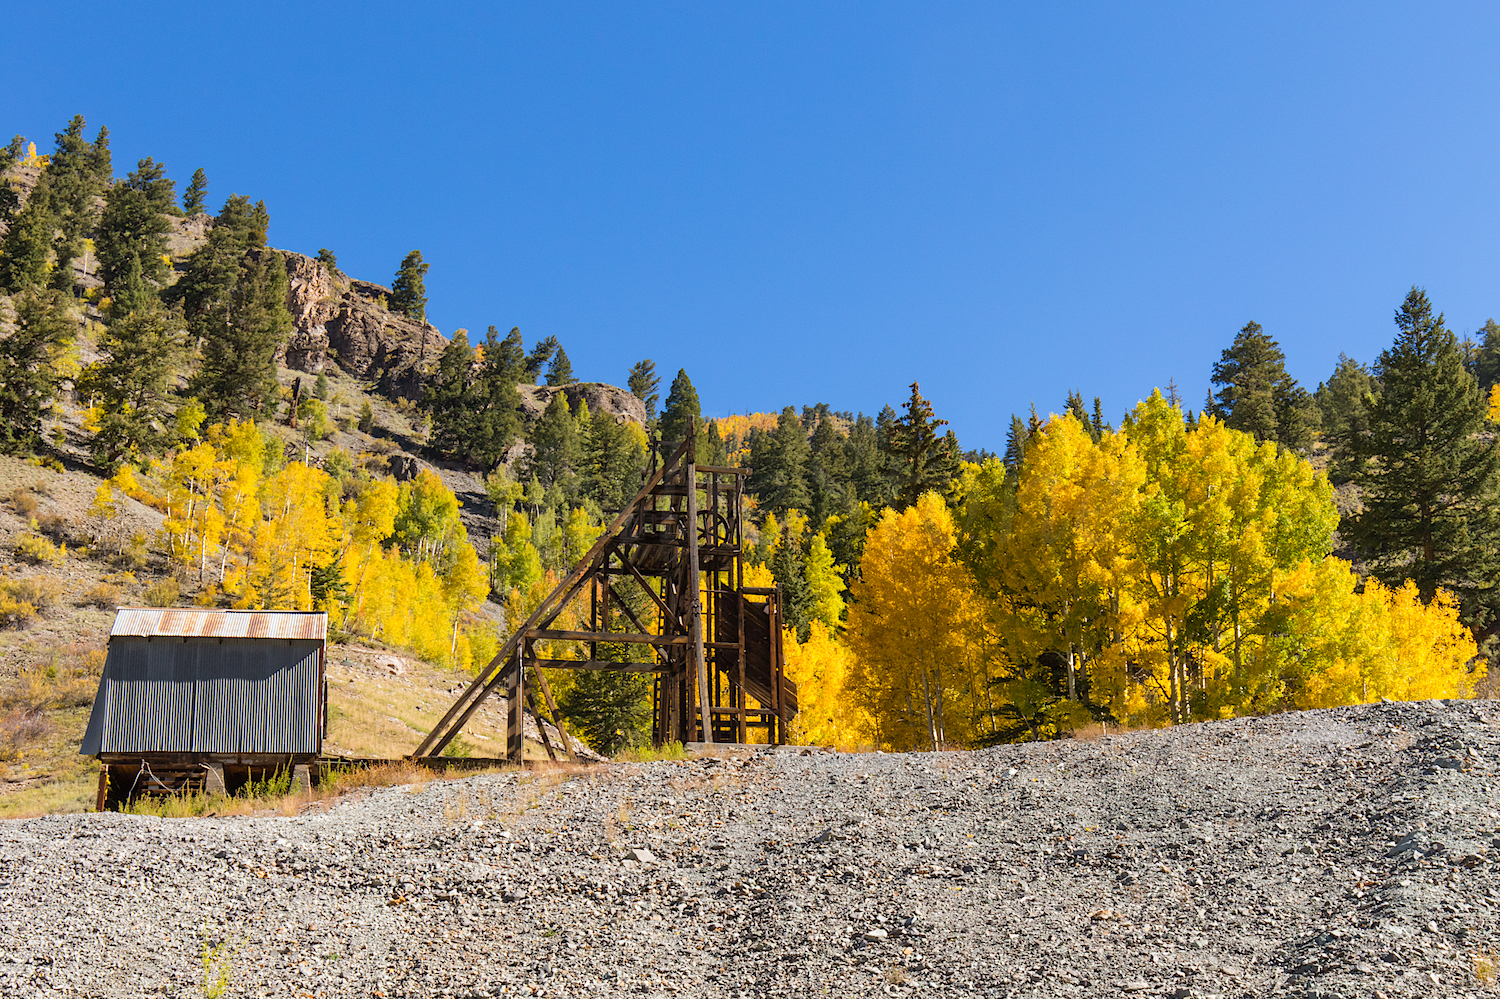 Henson Ghost Town, Image # 5191